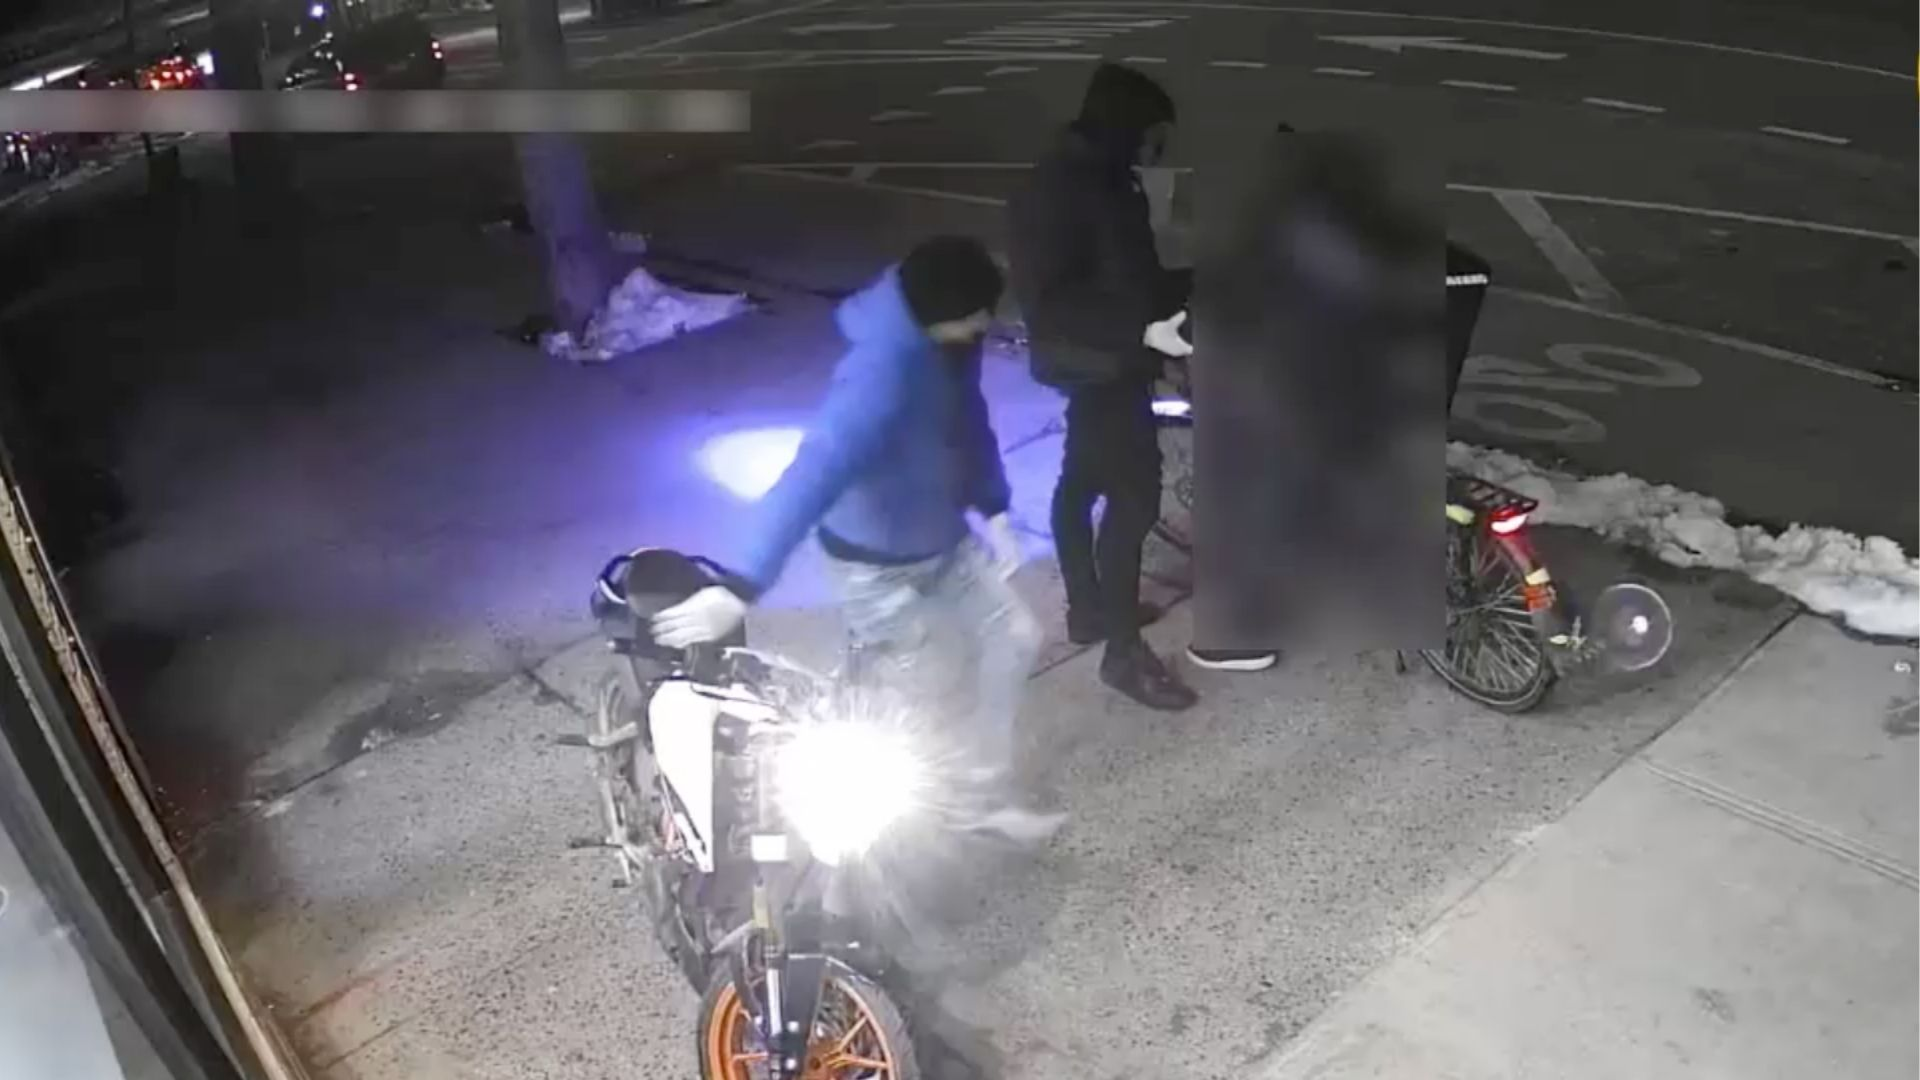 Men attack delivery man, steal bike in Gramercy